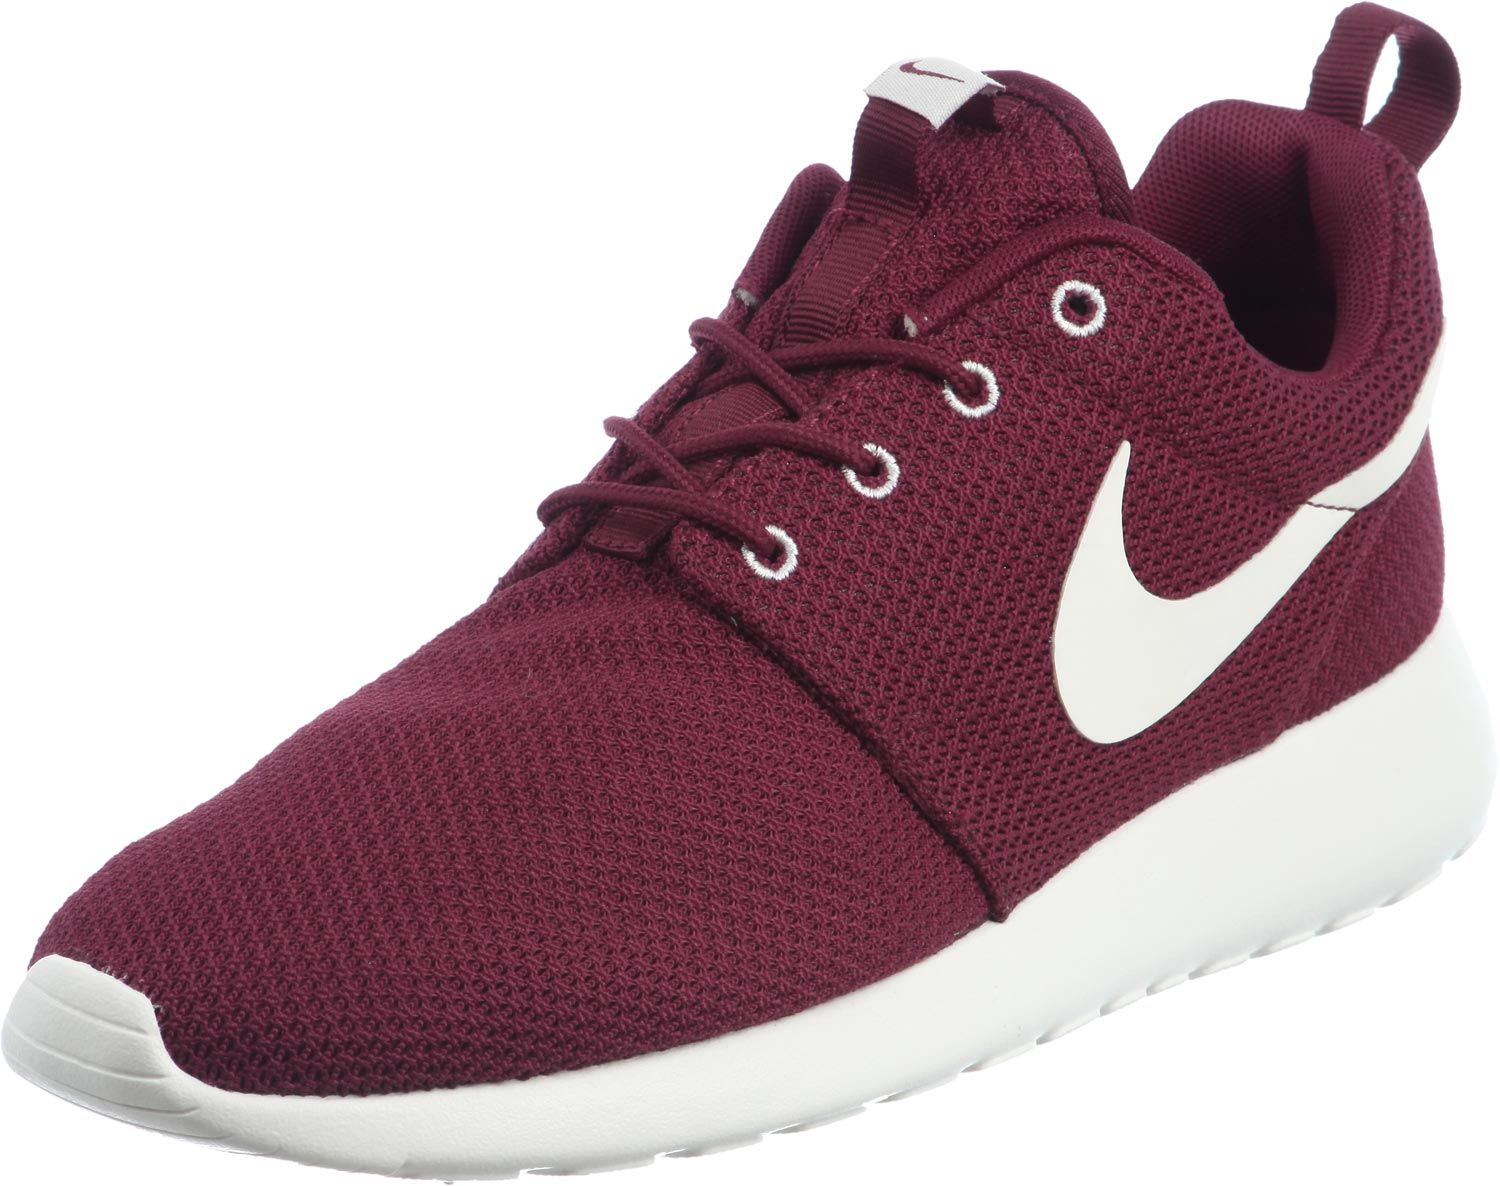 official photos 4a7f4 13958 nike roshe run bordeaux homme